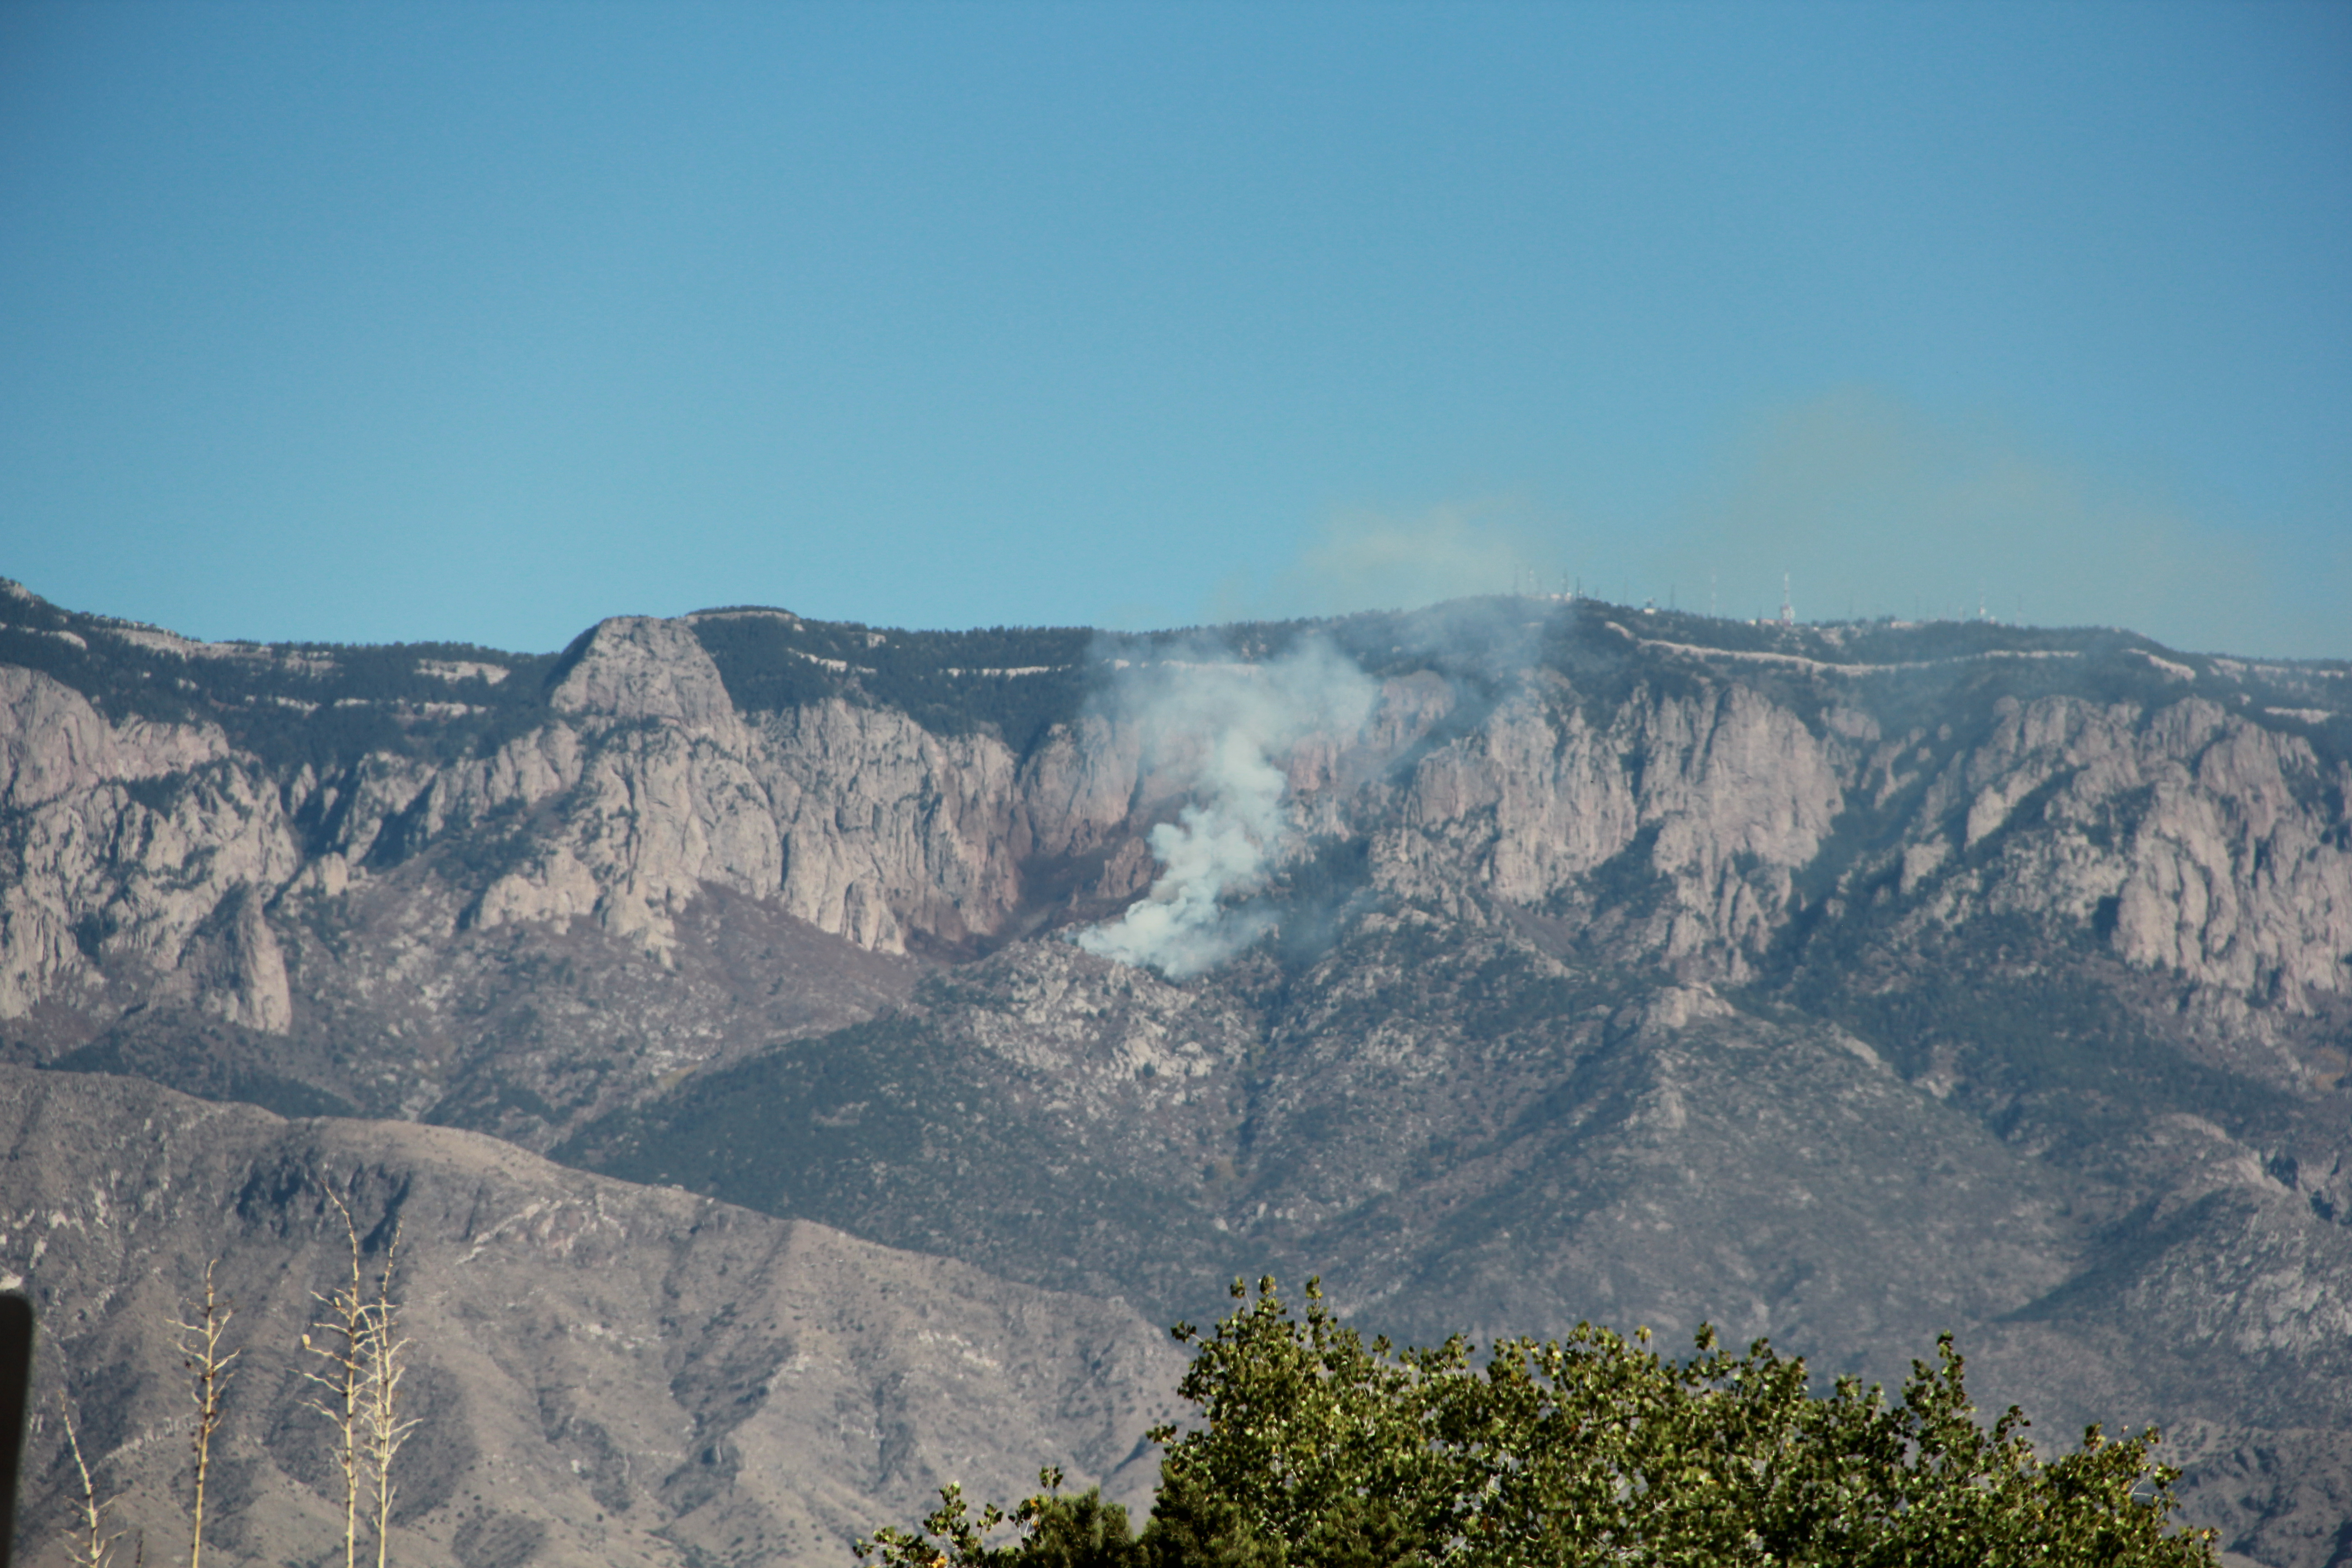 Chimney Canyon Fire